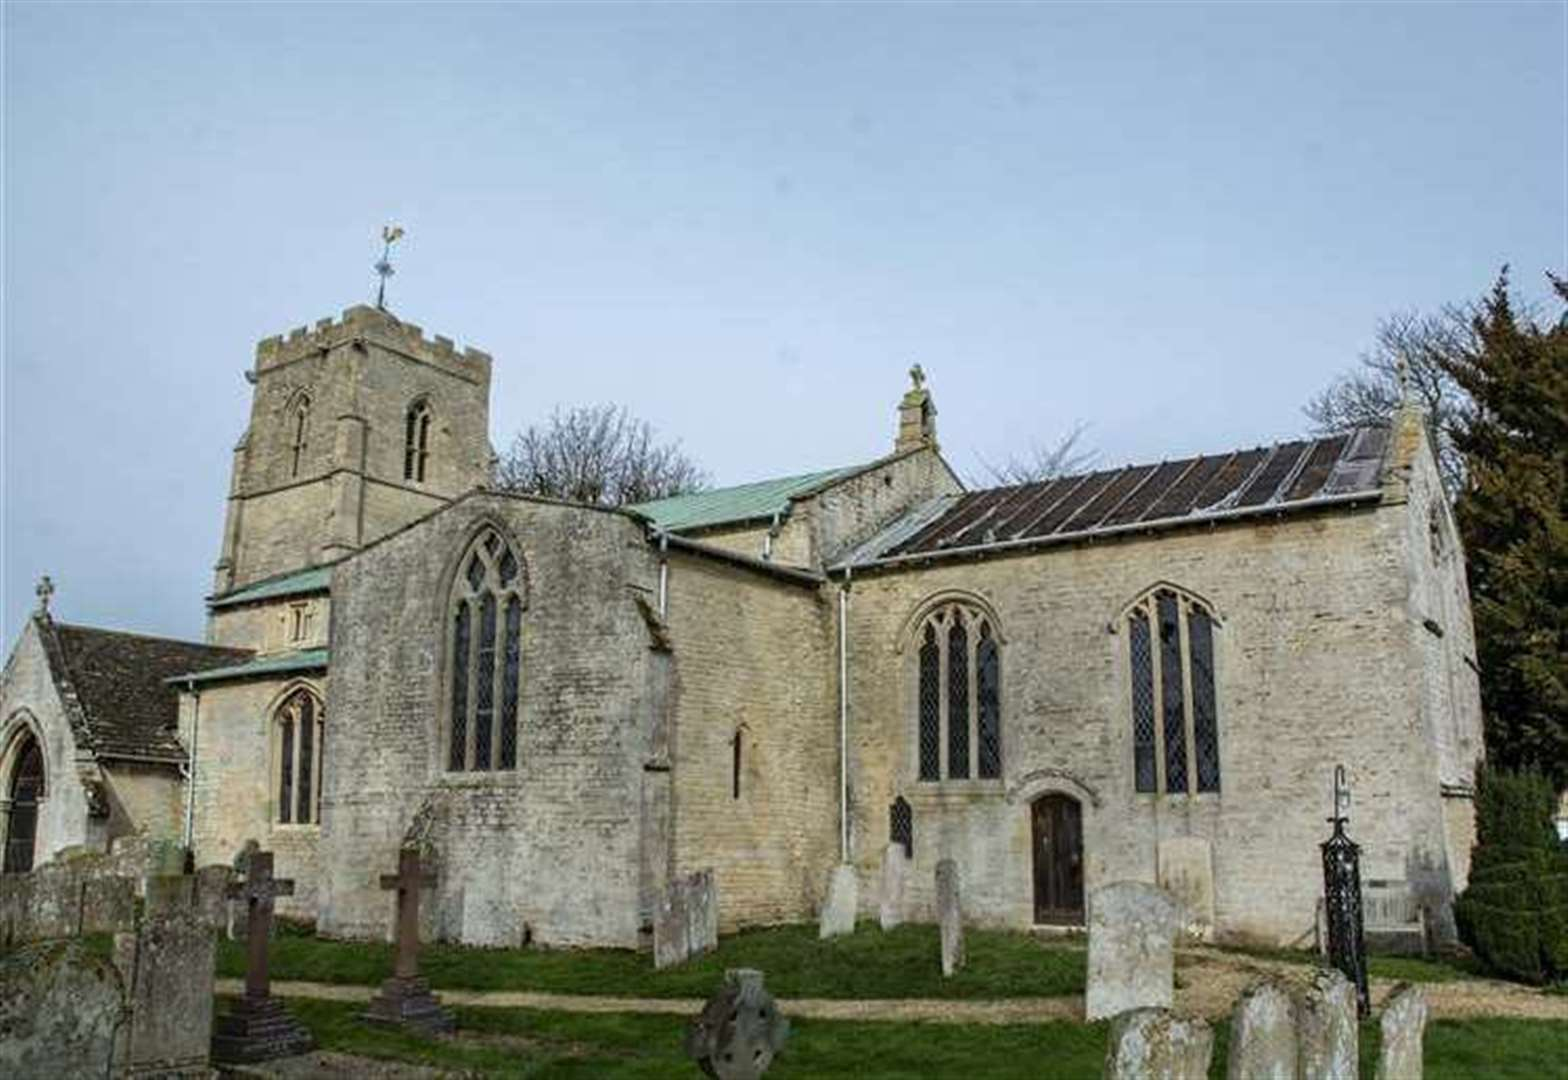 Village church to get stainless steel roof in the New Year